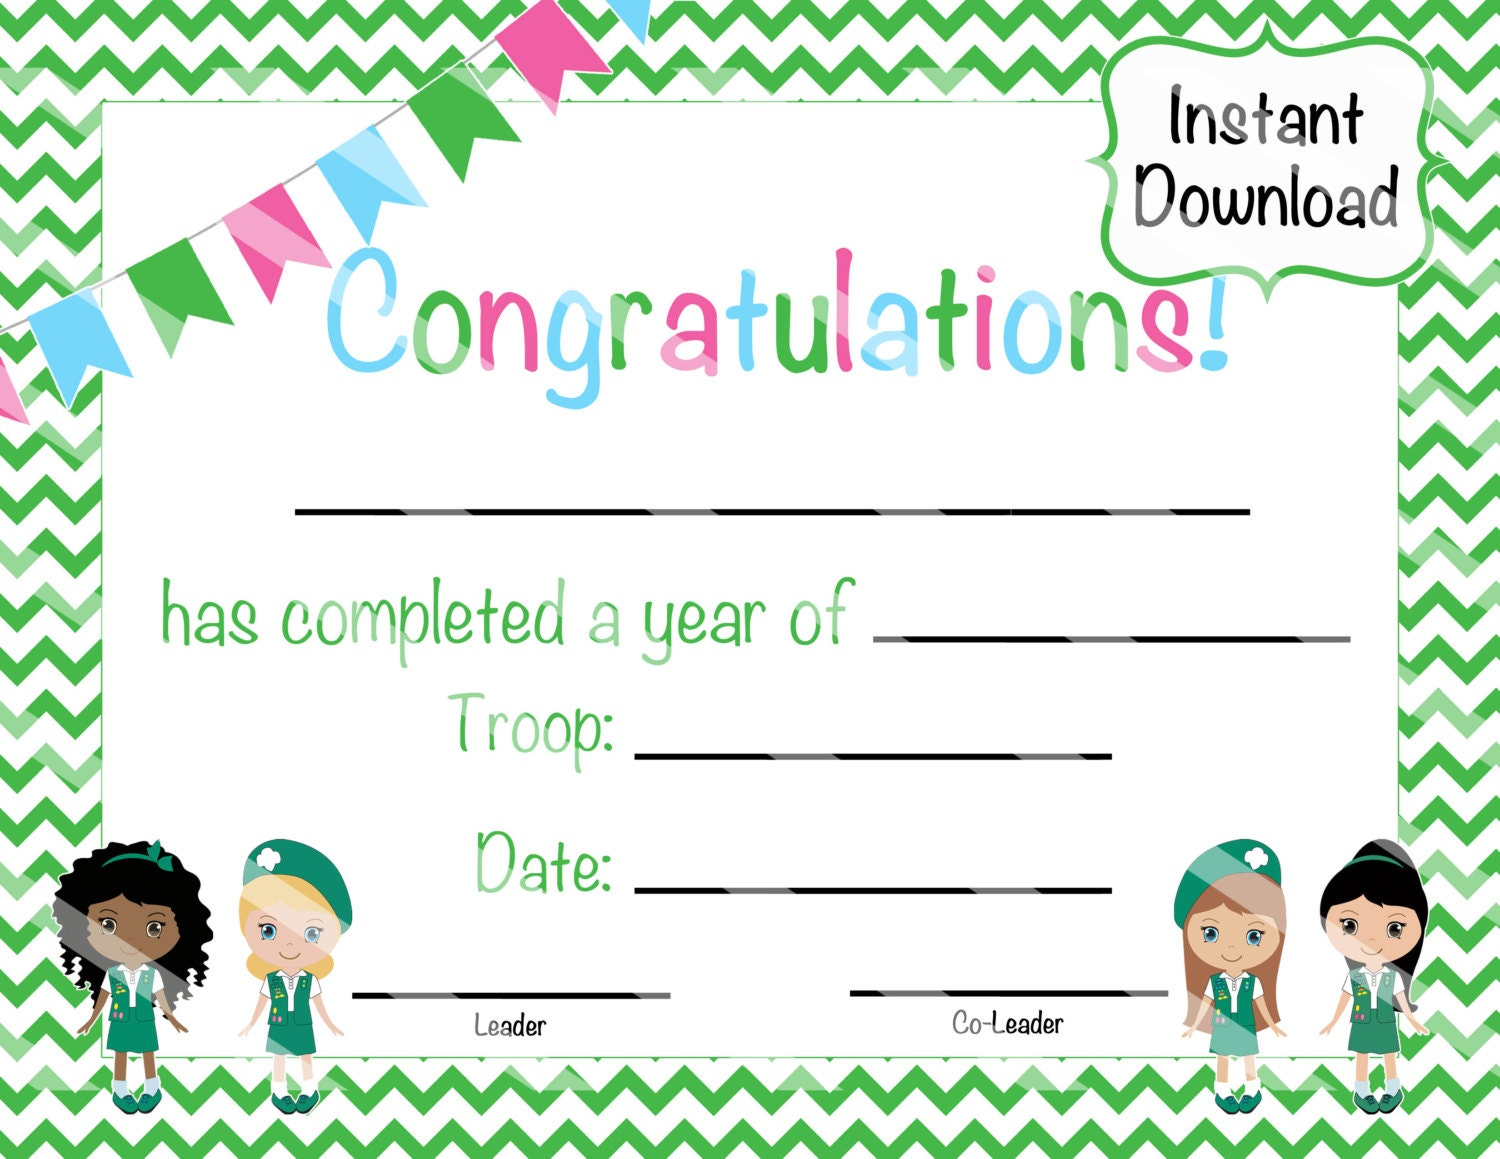 This is a photo of Candid Girl Scouts Certificates